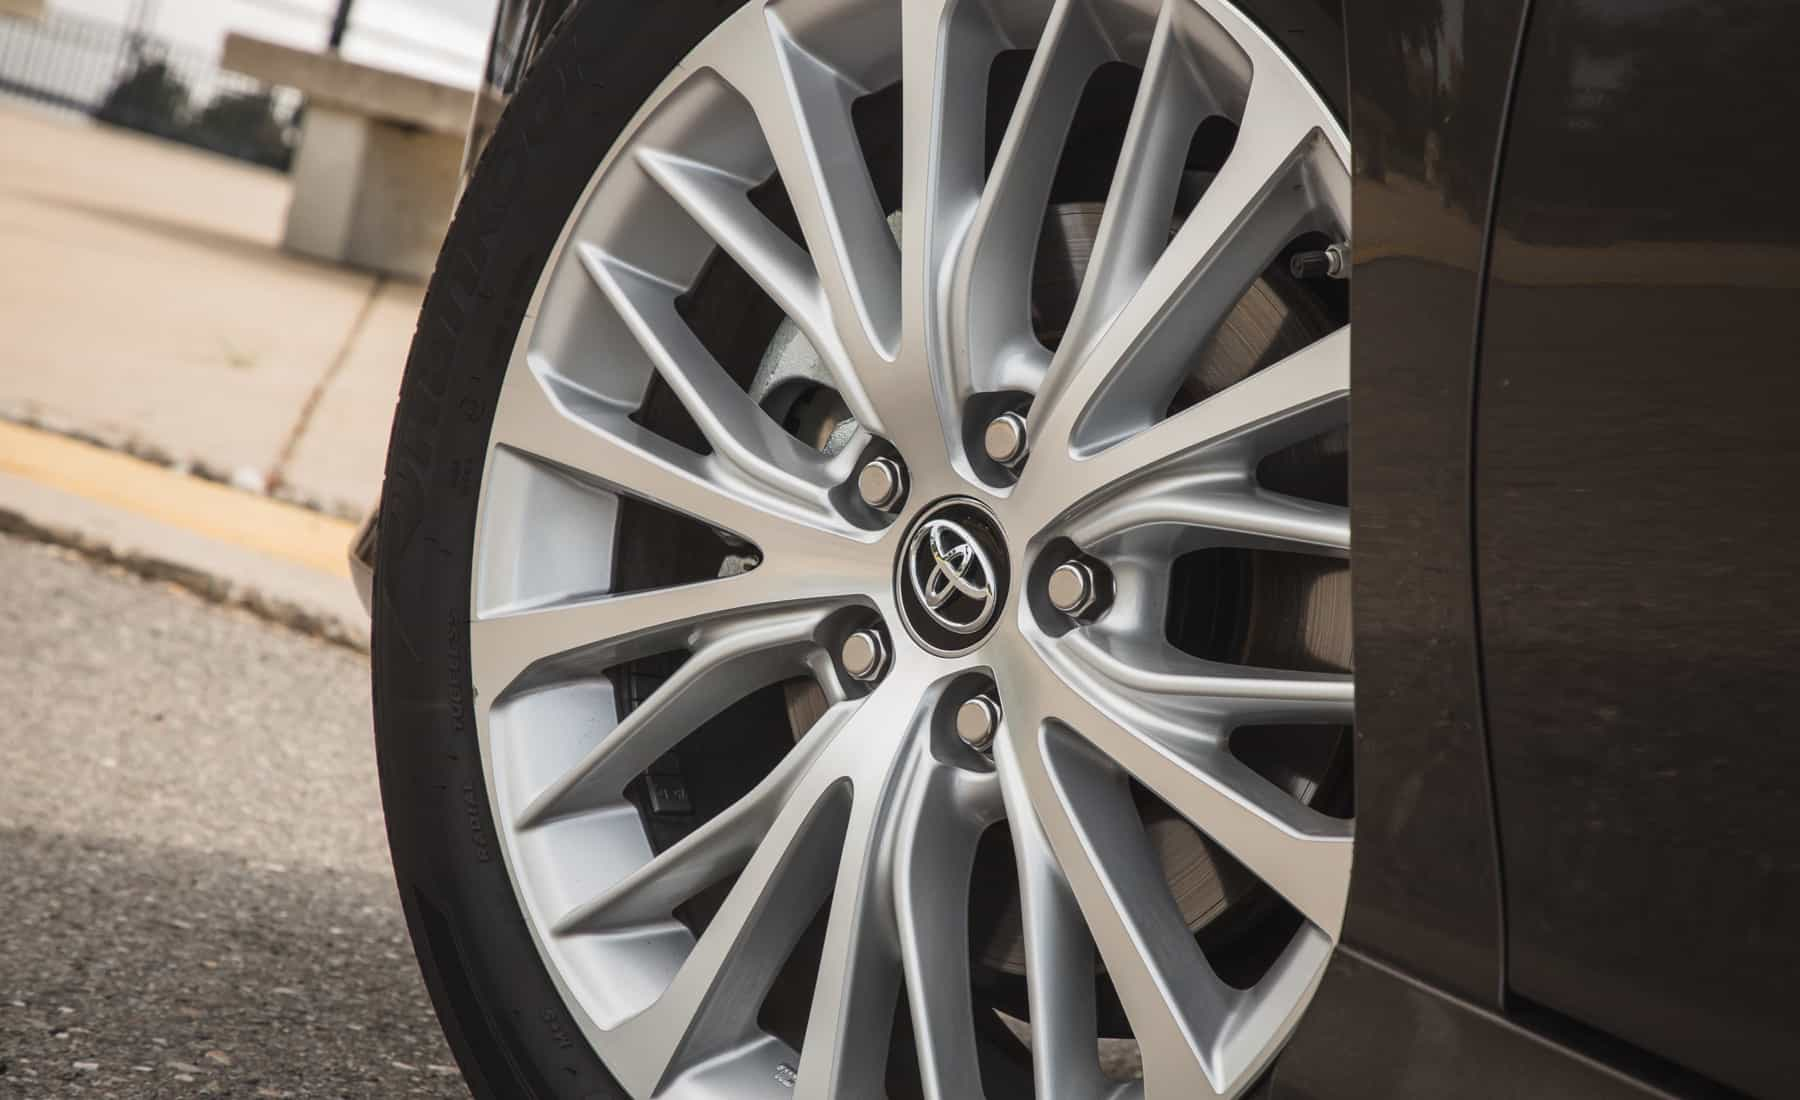 2018 Toyota Camry Hybrid XLE Exterior View Wheel Velg (Photo 30 of 41)